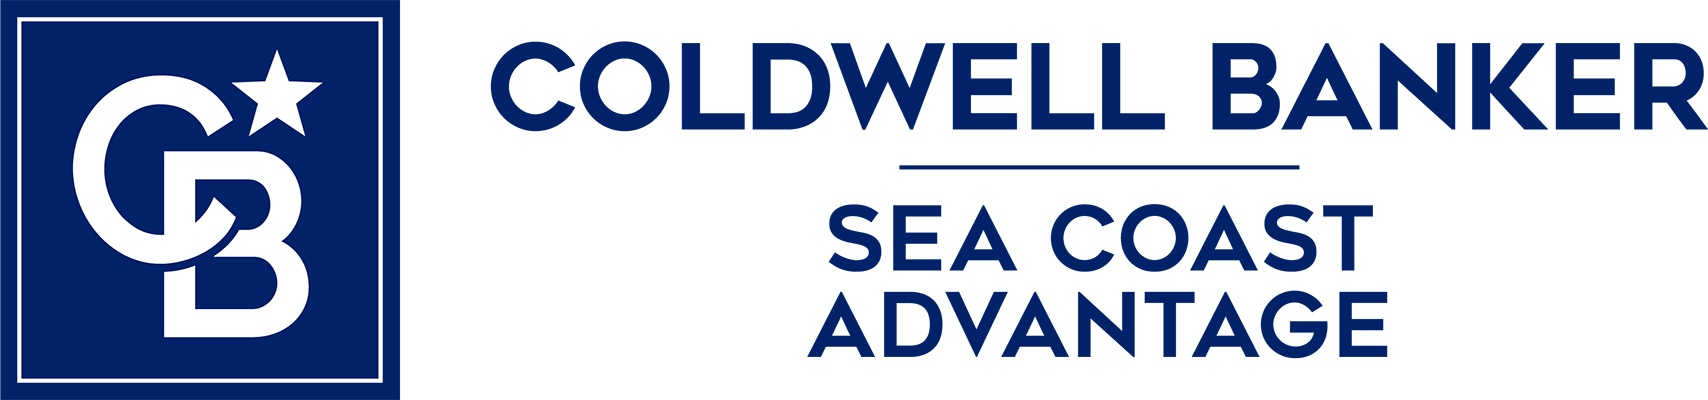 Robert Howell - Coldwell Banker Sea Coast Advantage Realty Logo